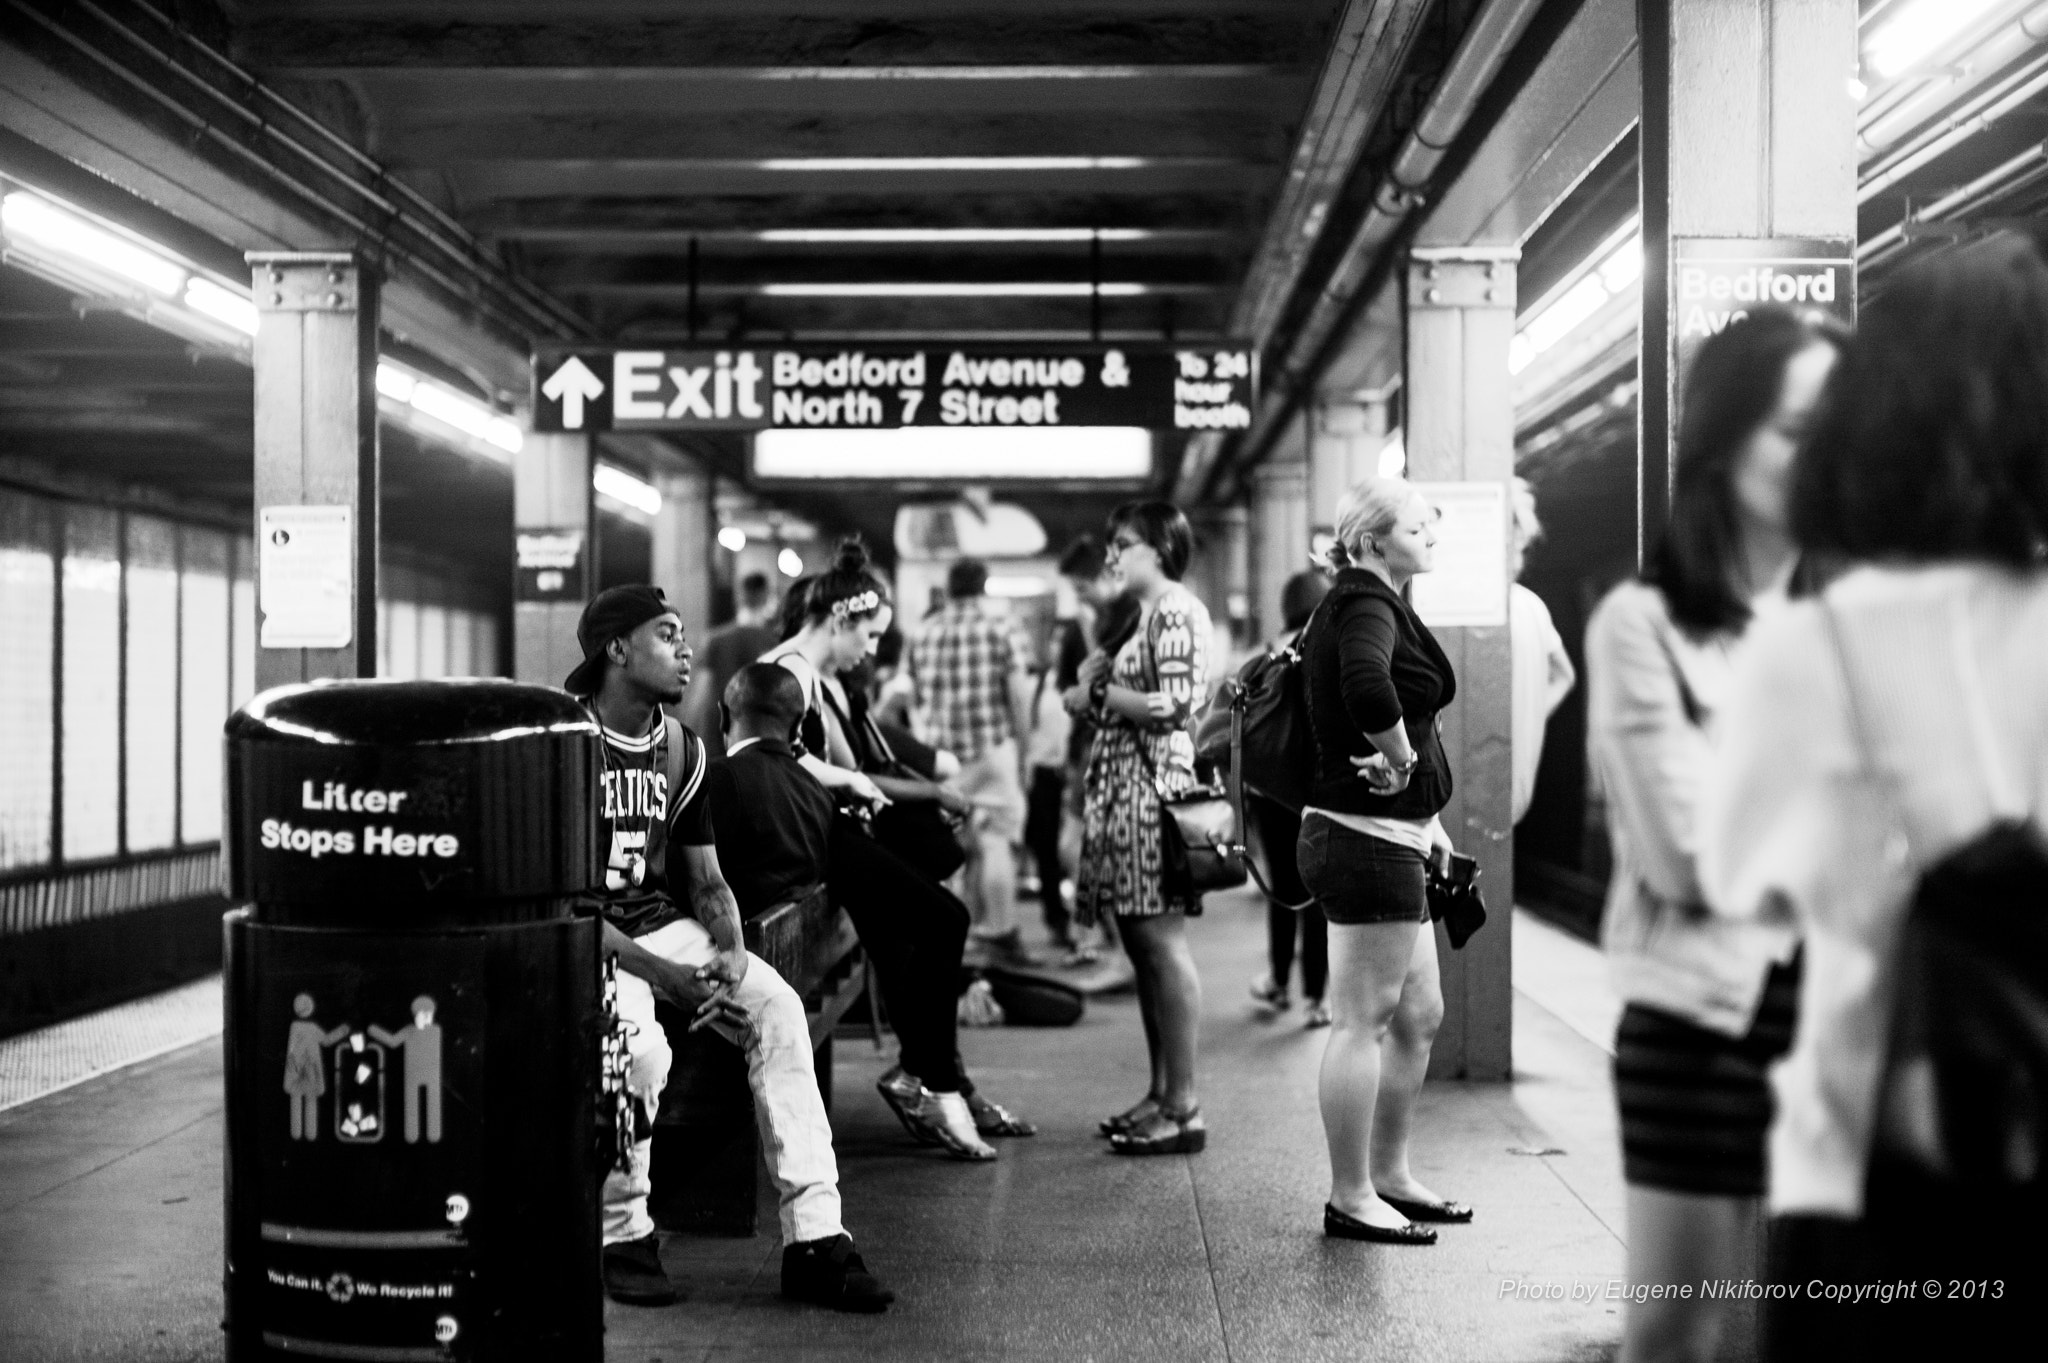 Photograph Random, Subway, NYC by Eugene Nikiforov on 500px